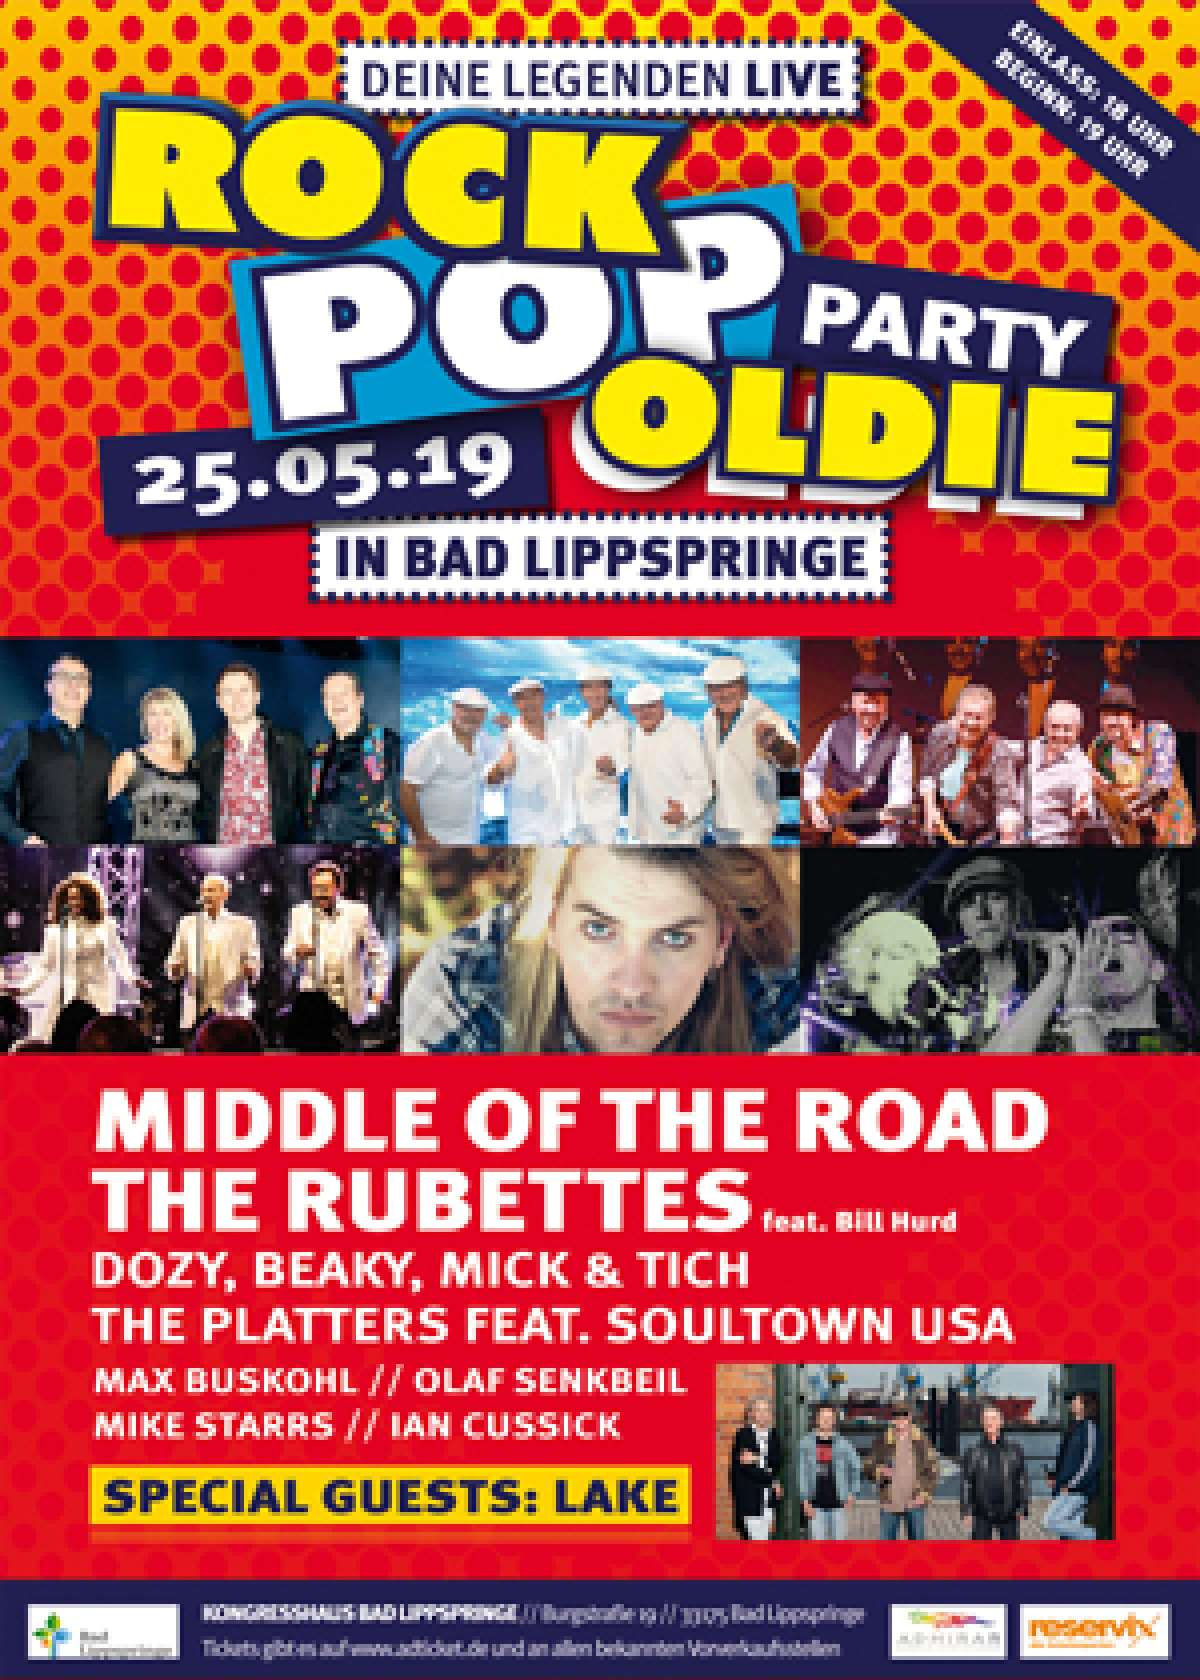 Rock-Pop-Oldie-Party - Deine Legenden LIVE - Middle of the Road, The Rubettes feat. Bill Hurd, Dozy, Beaky, Mick & Tich, Max Buskohl, The Platters feat. SOULTOWN USA, Olaf Senkbeil, Ian Cussick, Mike Starrs - Special Guests: LAKE - Kongresshaus - Bad Lippspringe